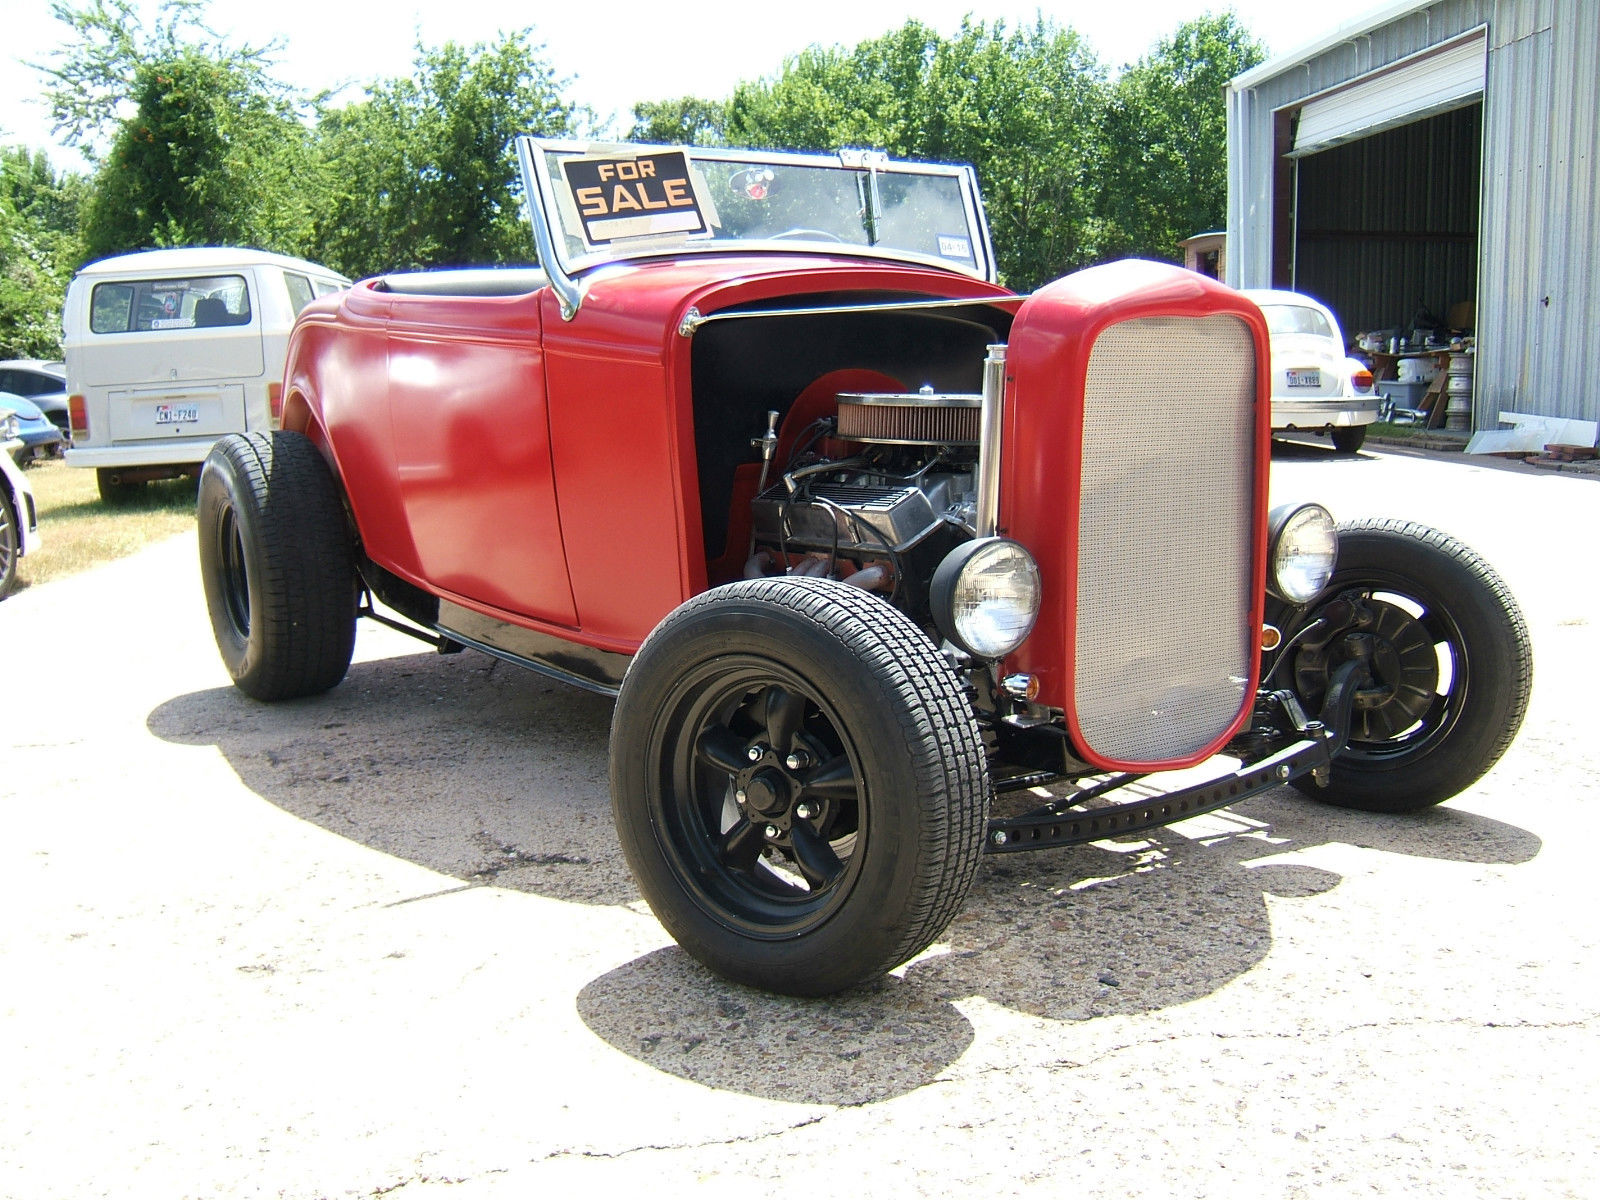 Daily Turismo: Seller Submission: 1932 Ford Highboy Roadster